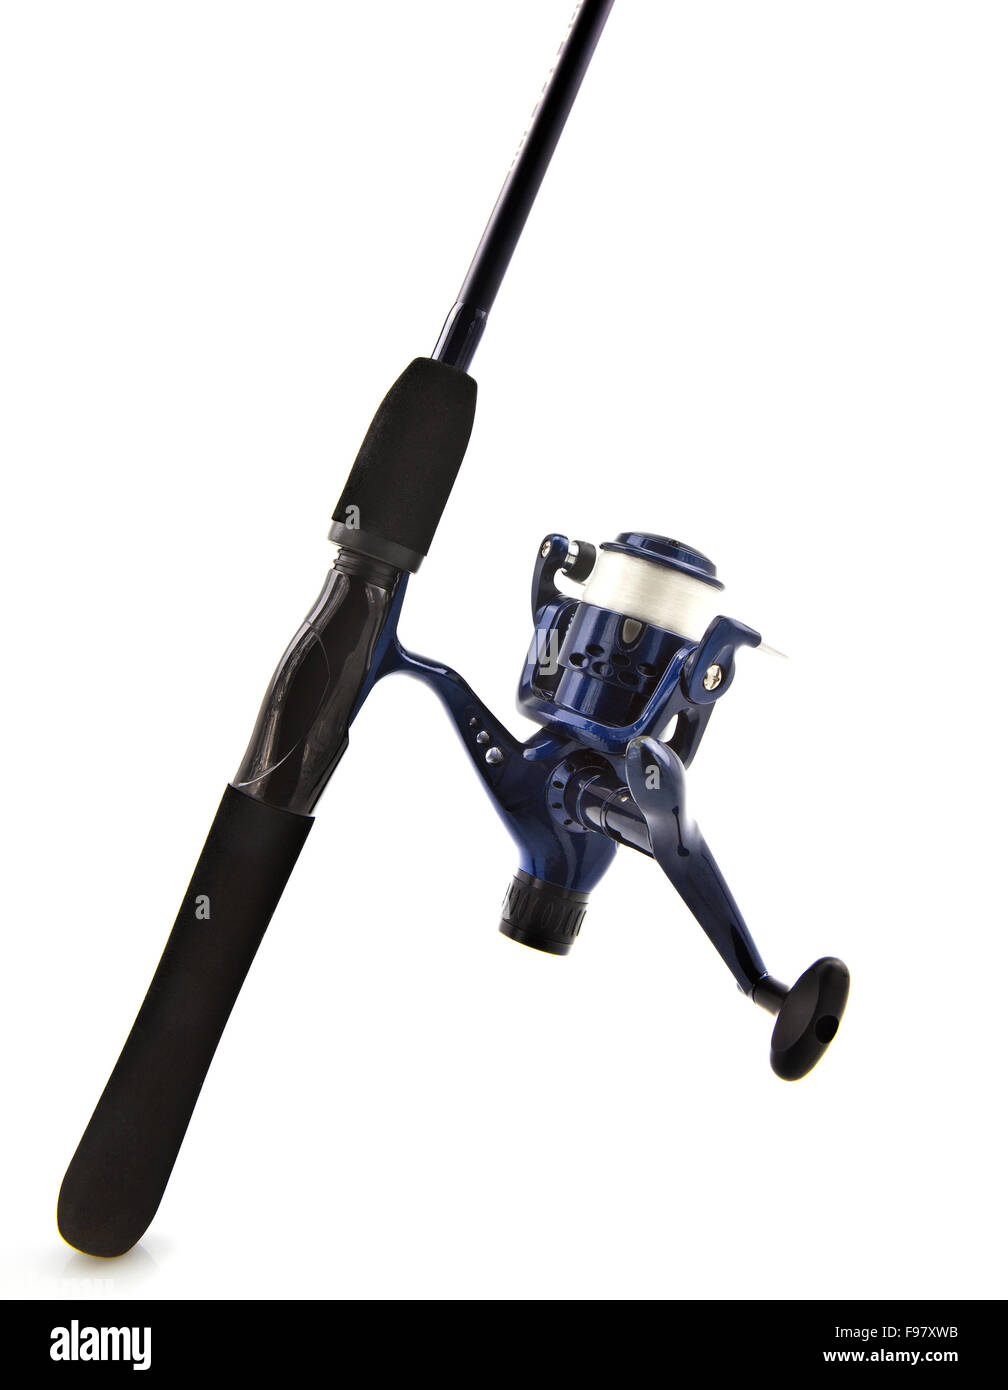 Fishing rod and reel  isolated on white. - Stock Image